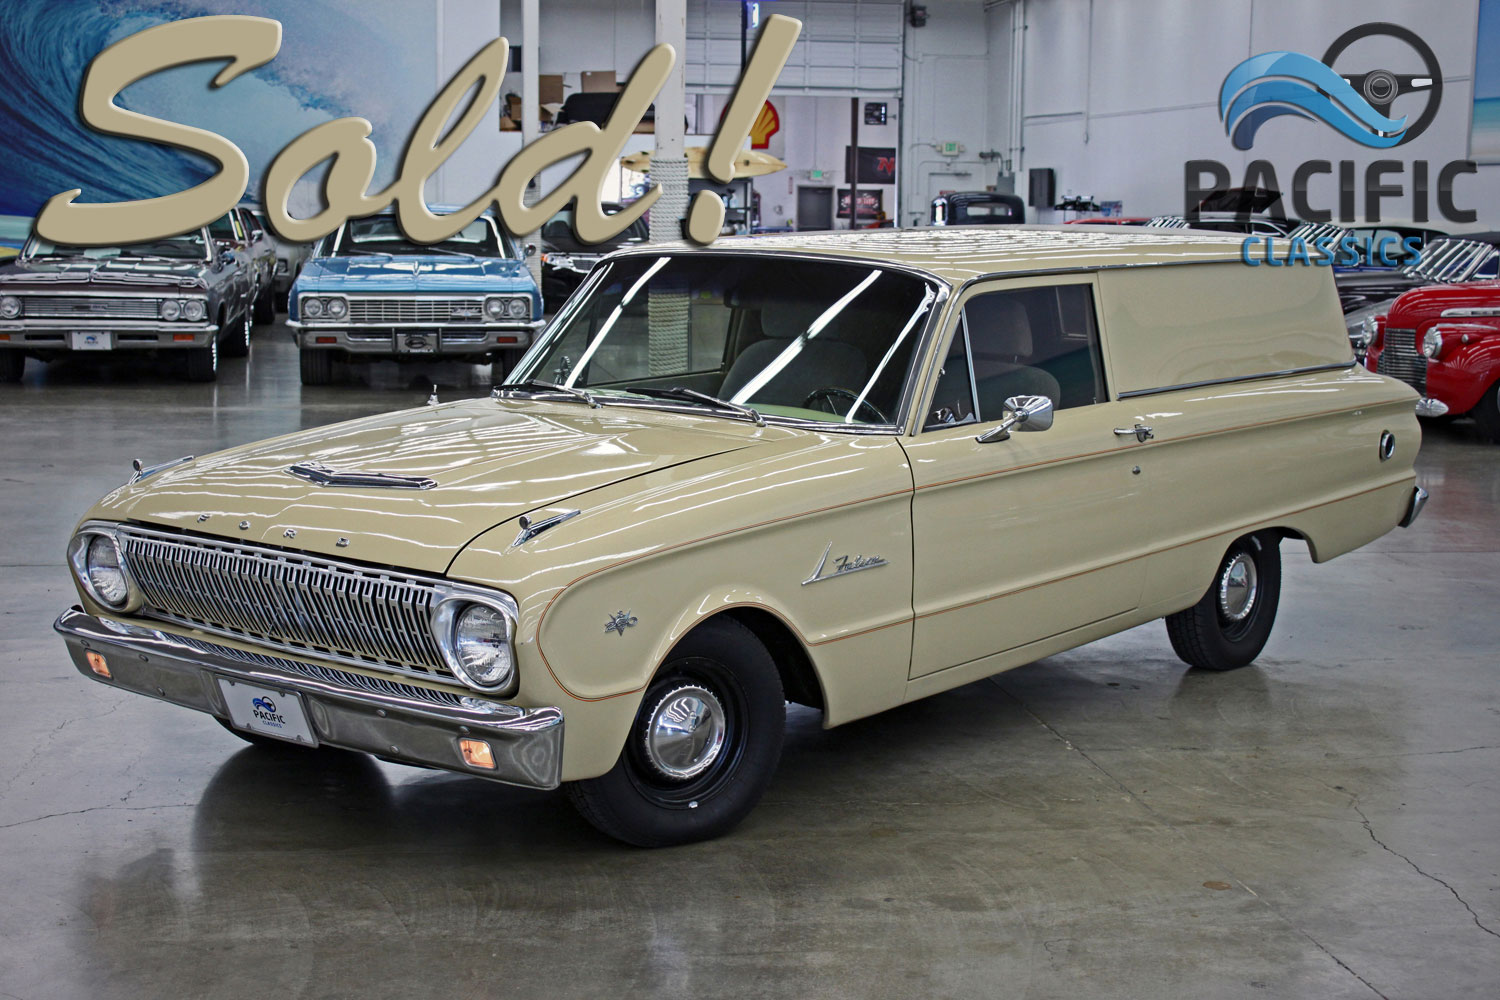 1962 Ford Falcon Sedan Delivery